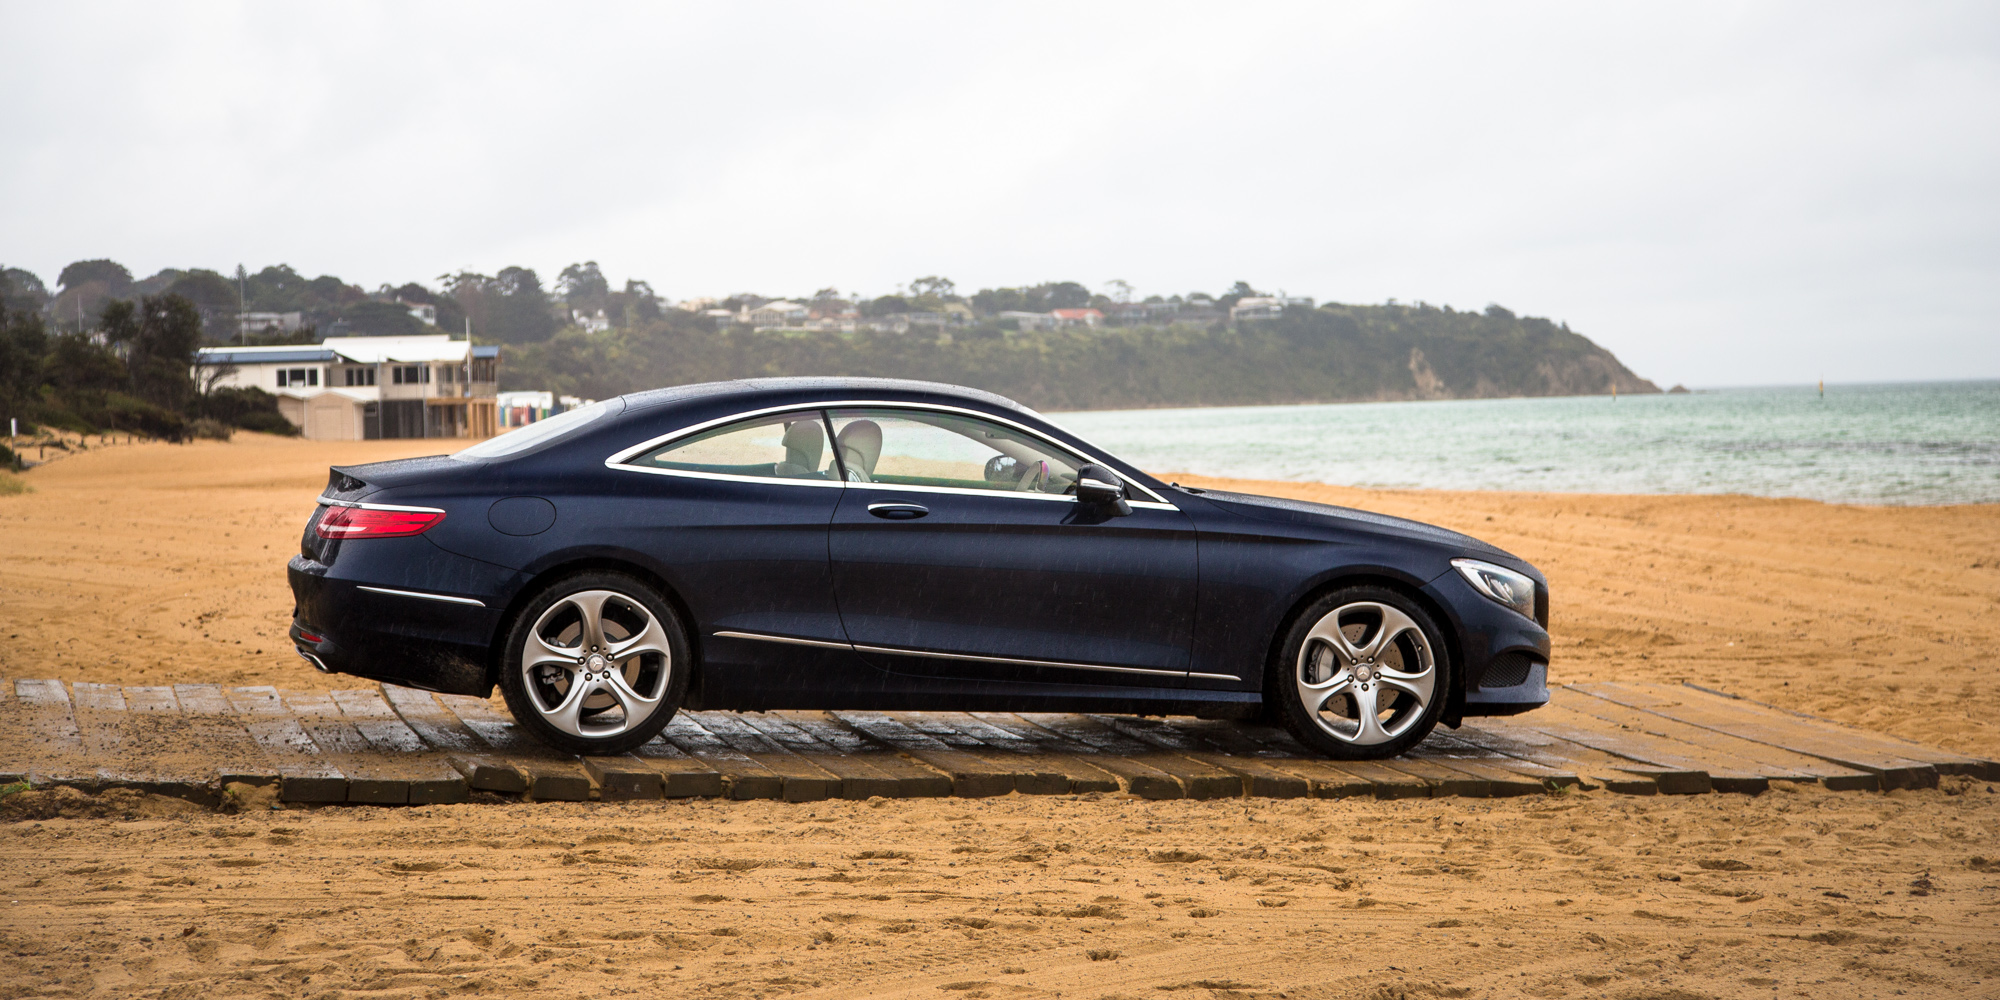 2015 mercedes benz s500 coupe review caradvice for Mercedes benz s500 coupe